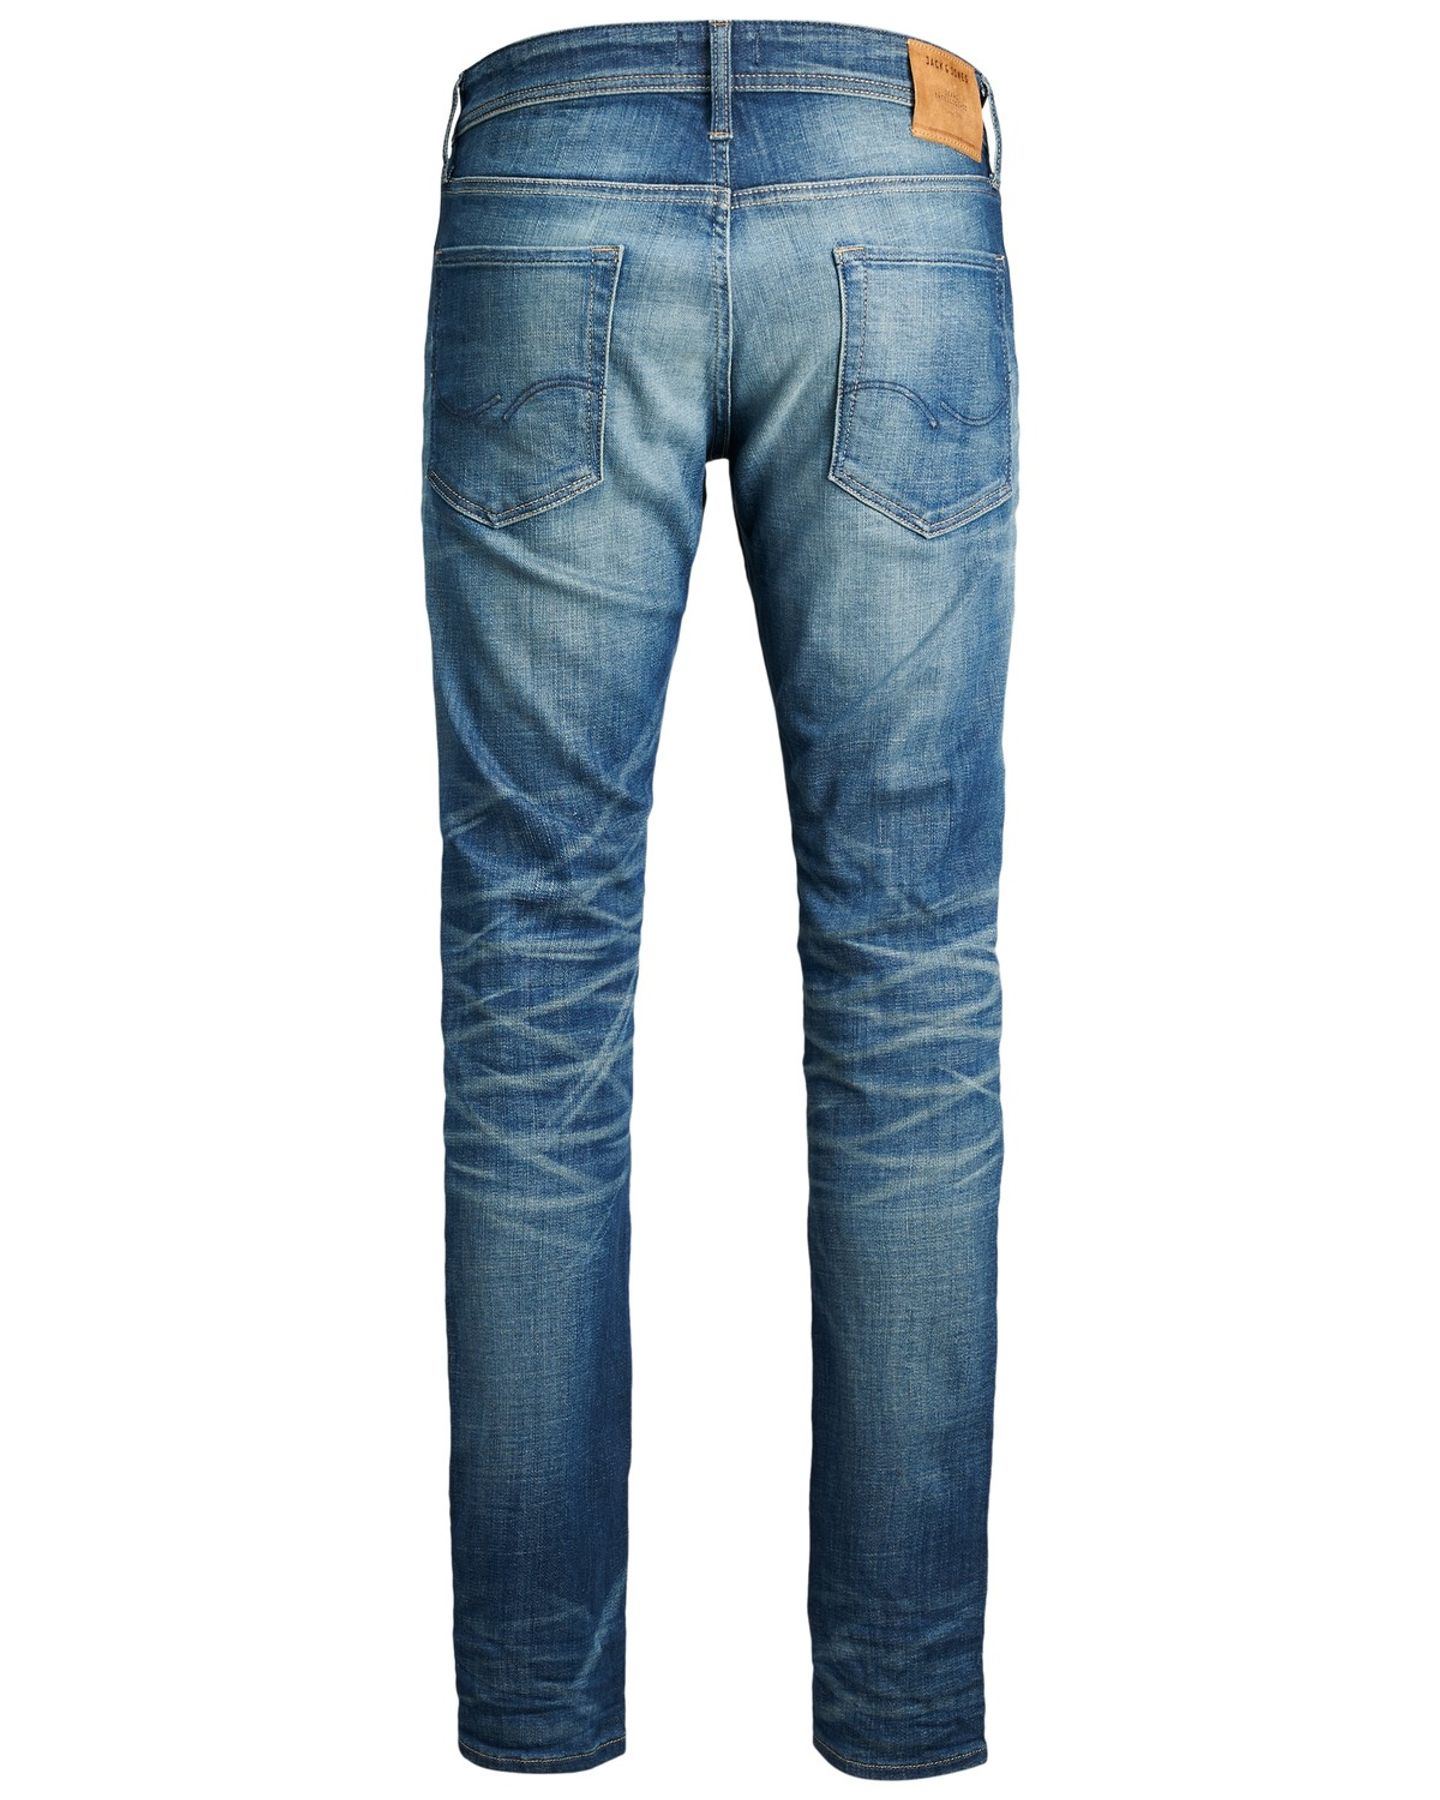 Jack & Jones - Herren Jeans, Slim Fit (Art. 12140285) – Bild 2